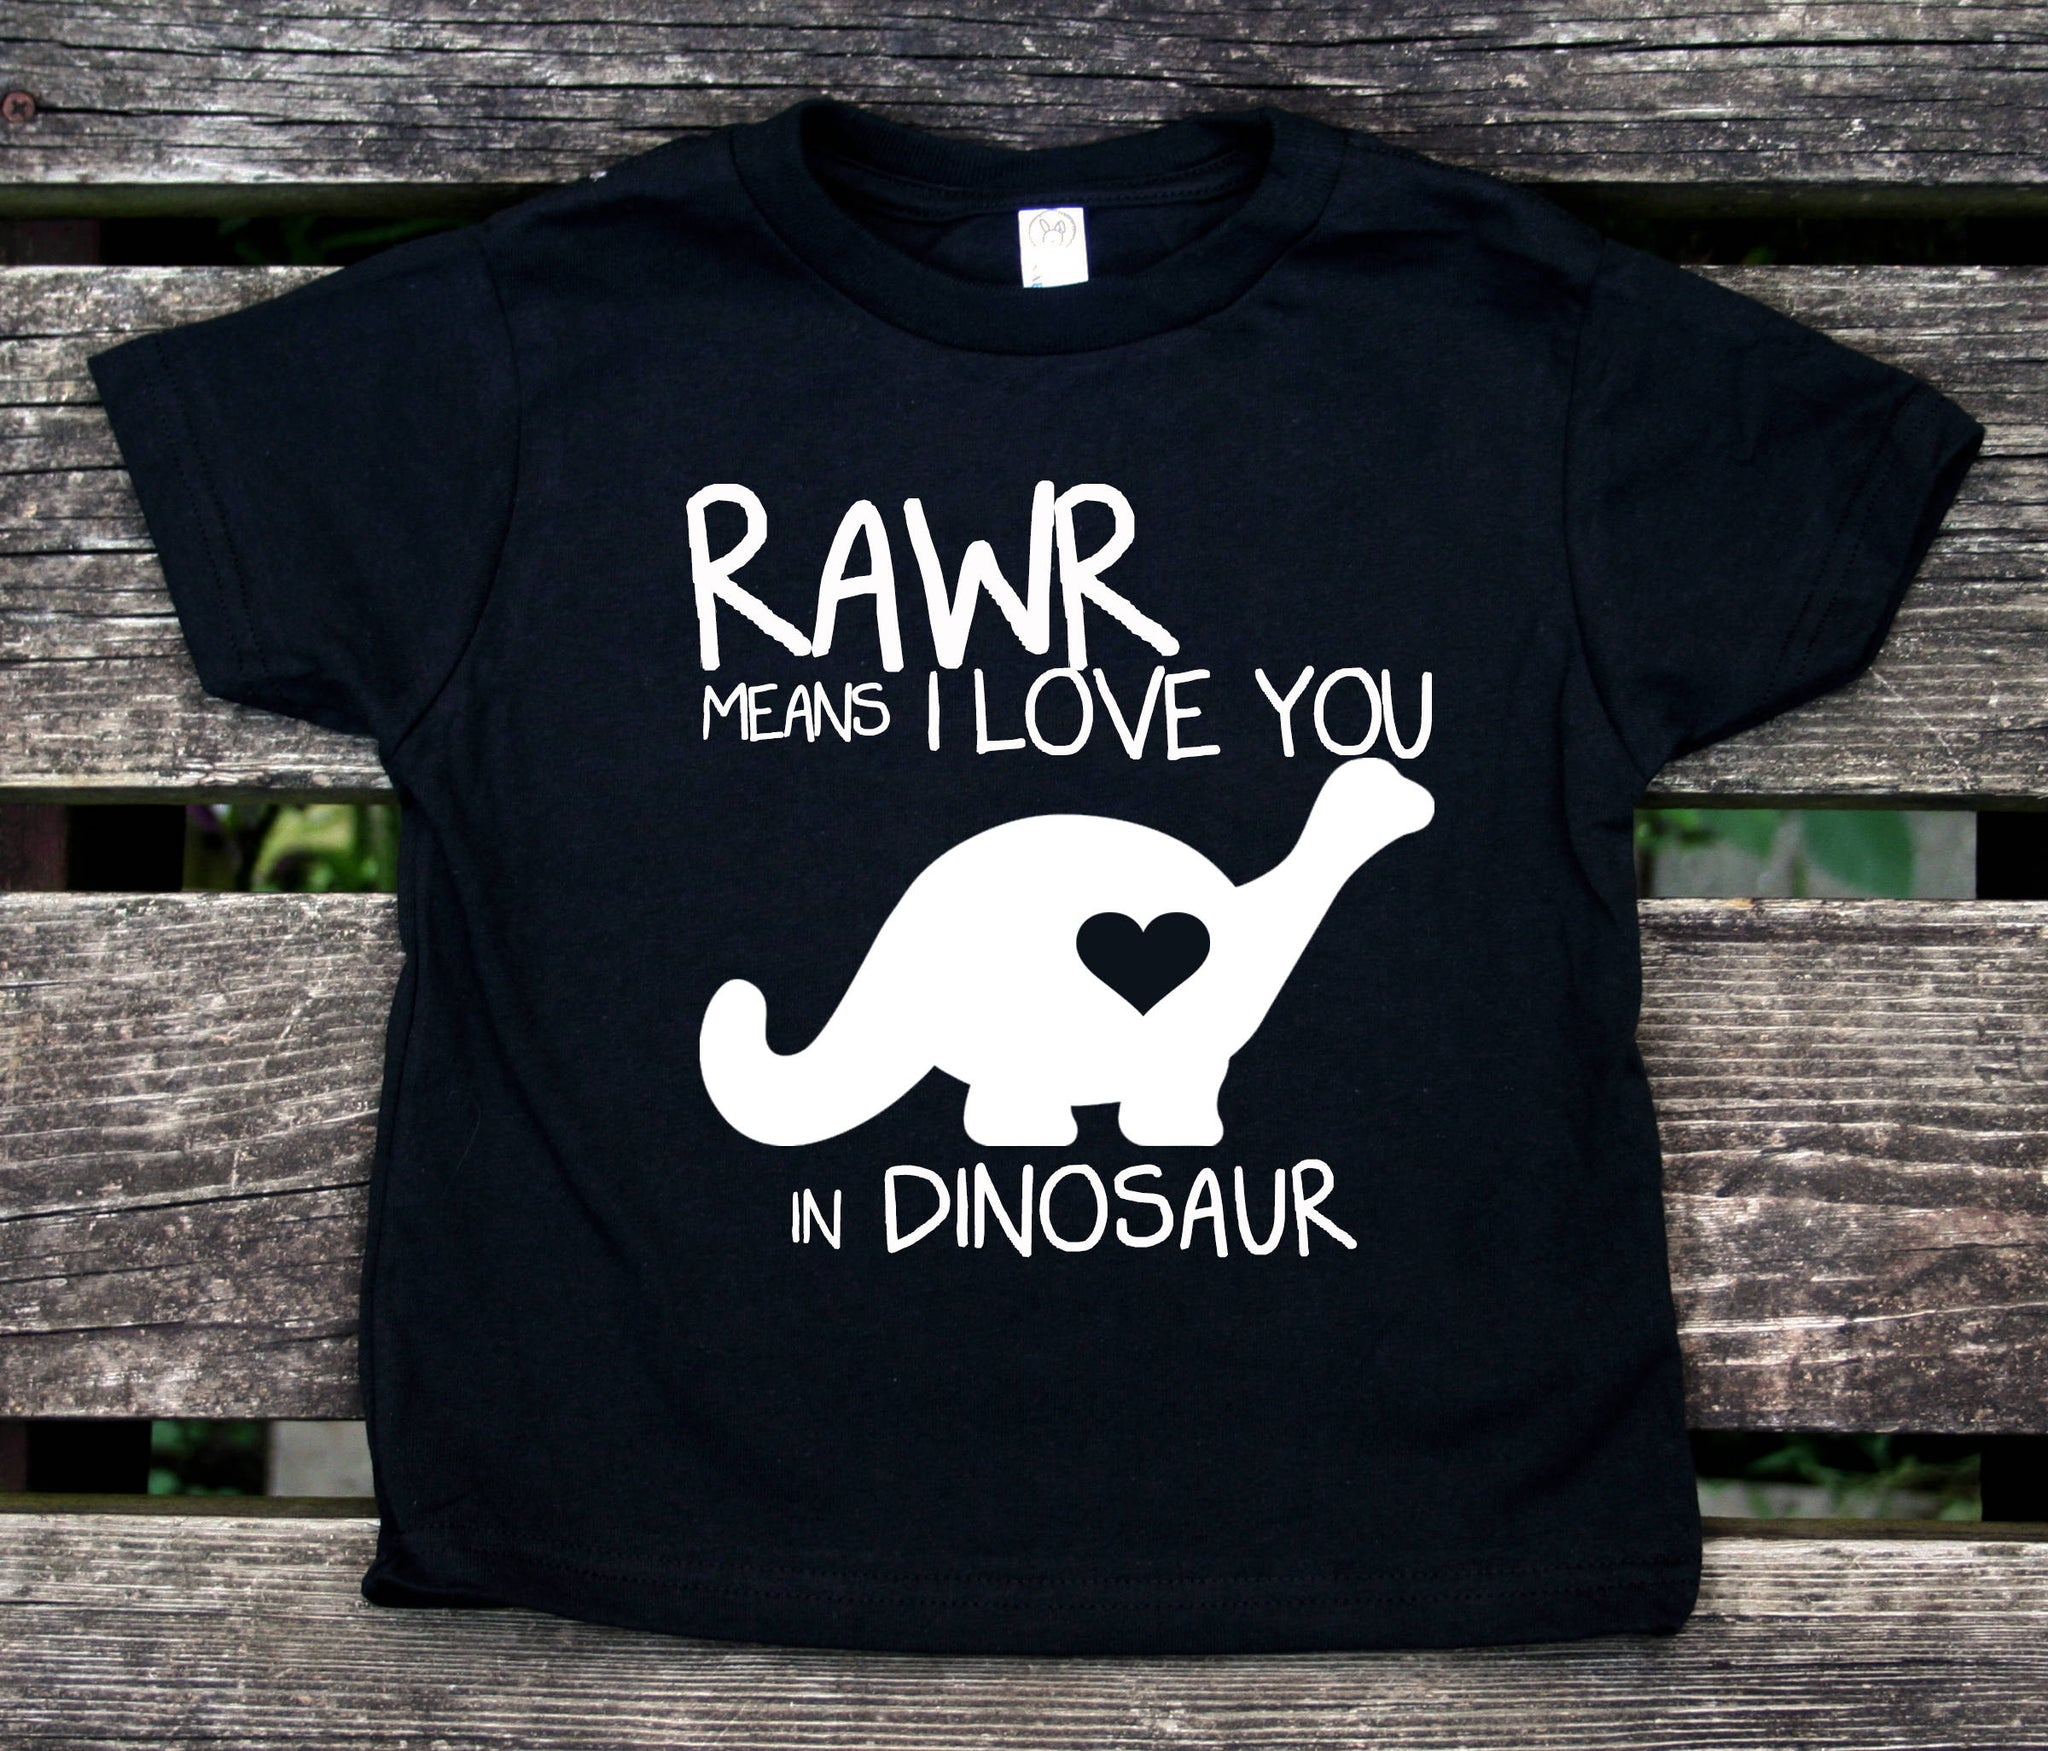 Rawr Means I Love You In Dinosaur Toddler Shirt Cute Dino ...